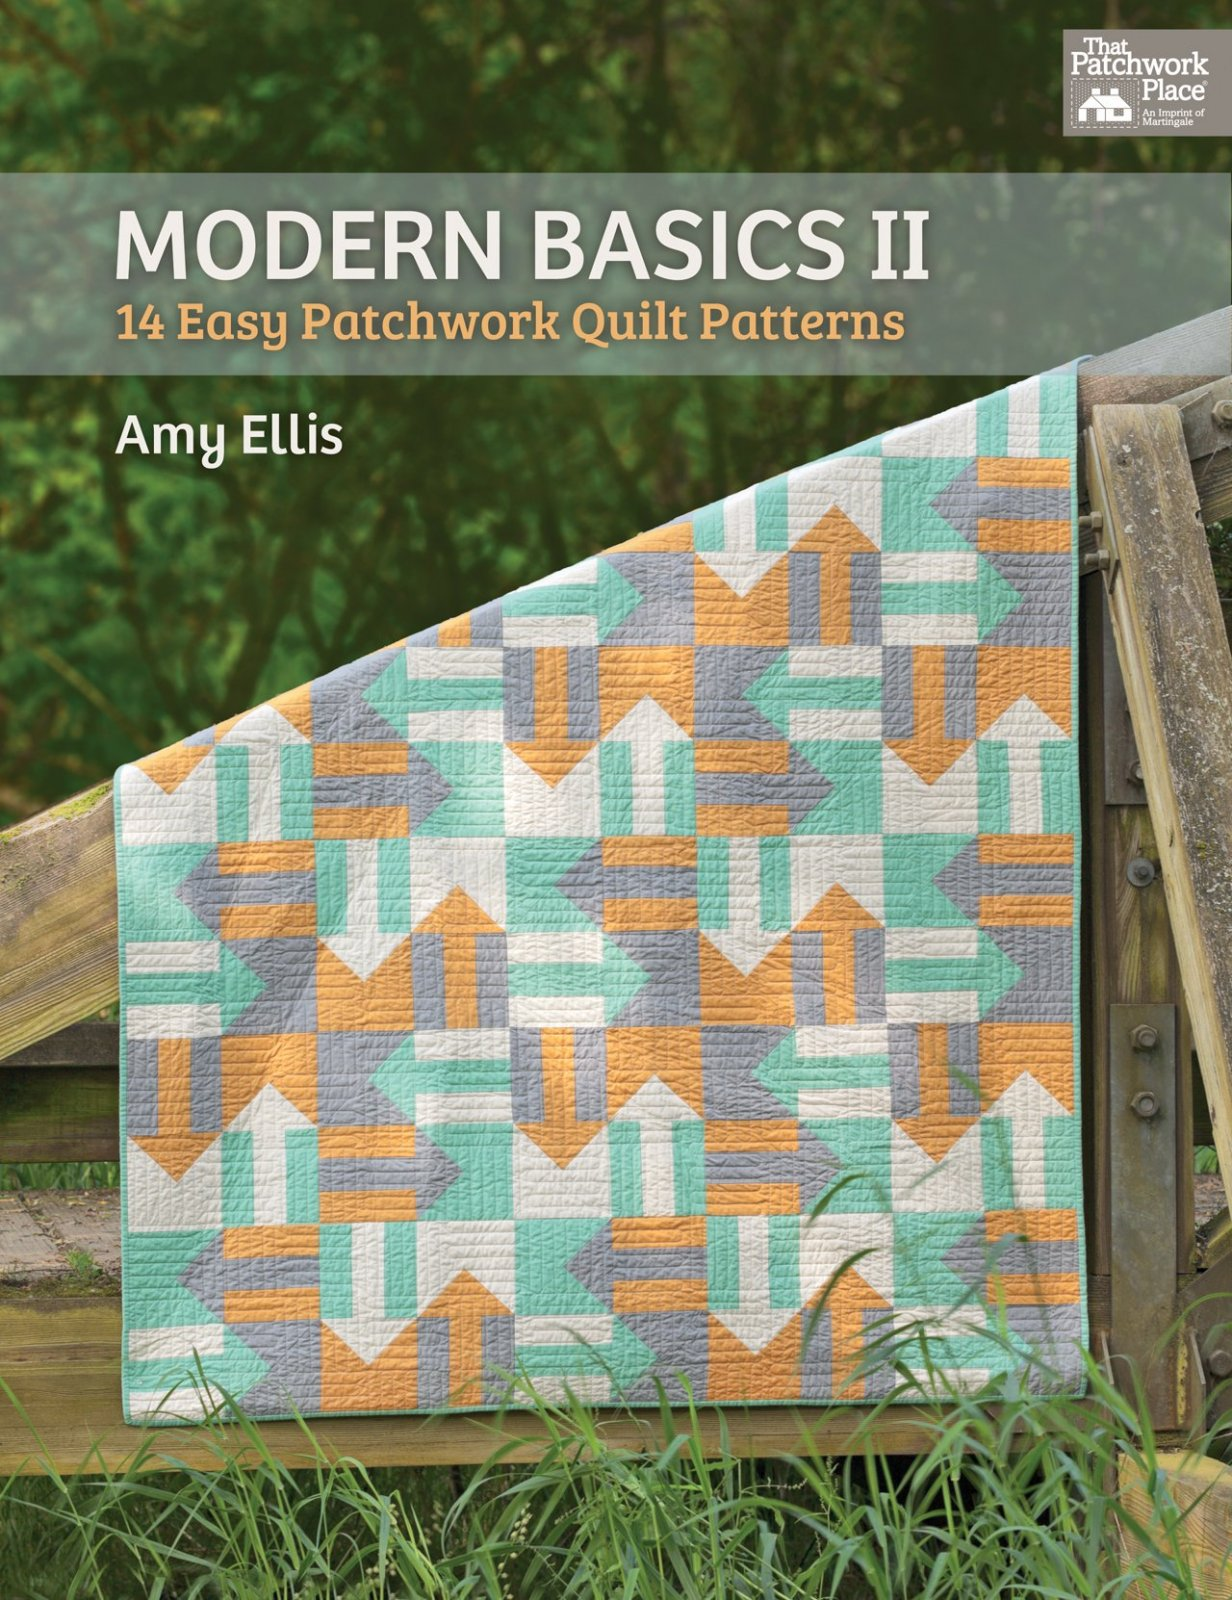 Modern Basics II - 14 Easy Patchwork Quilt Patterns